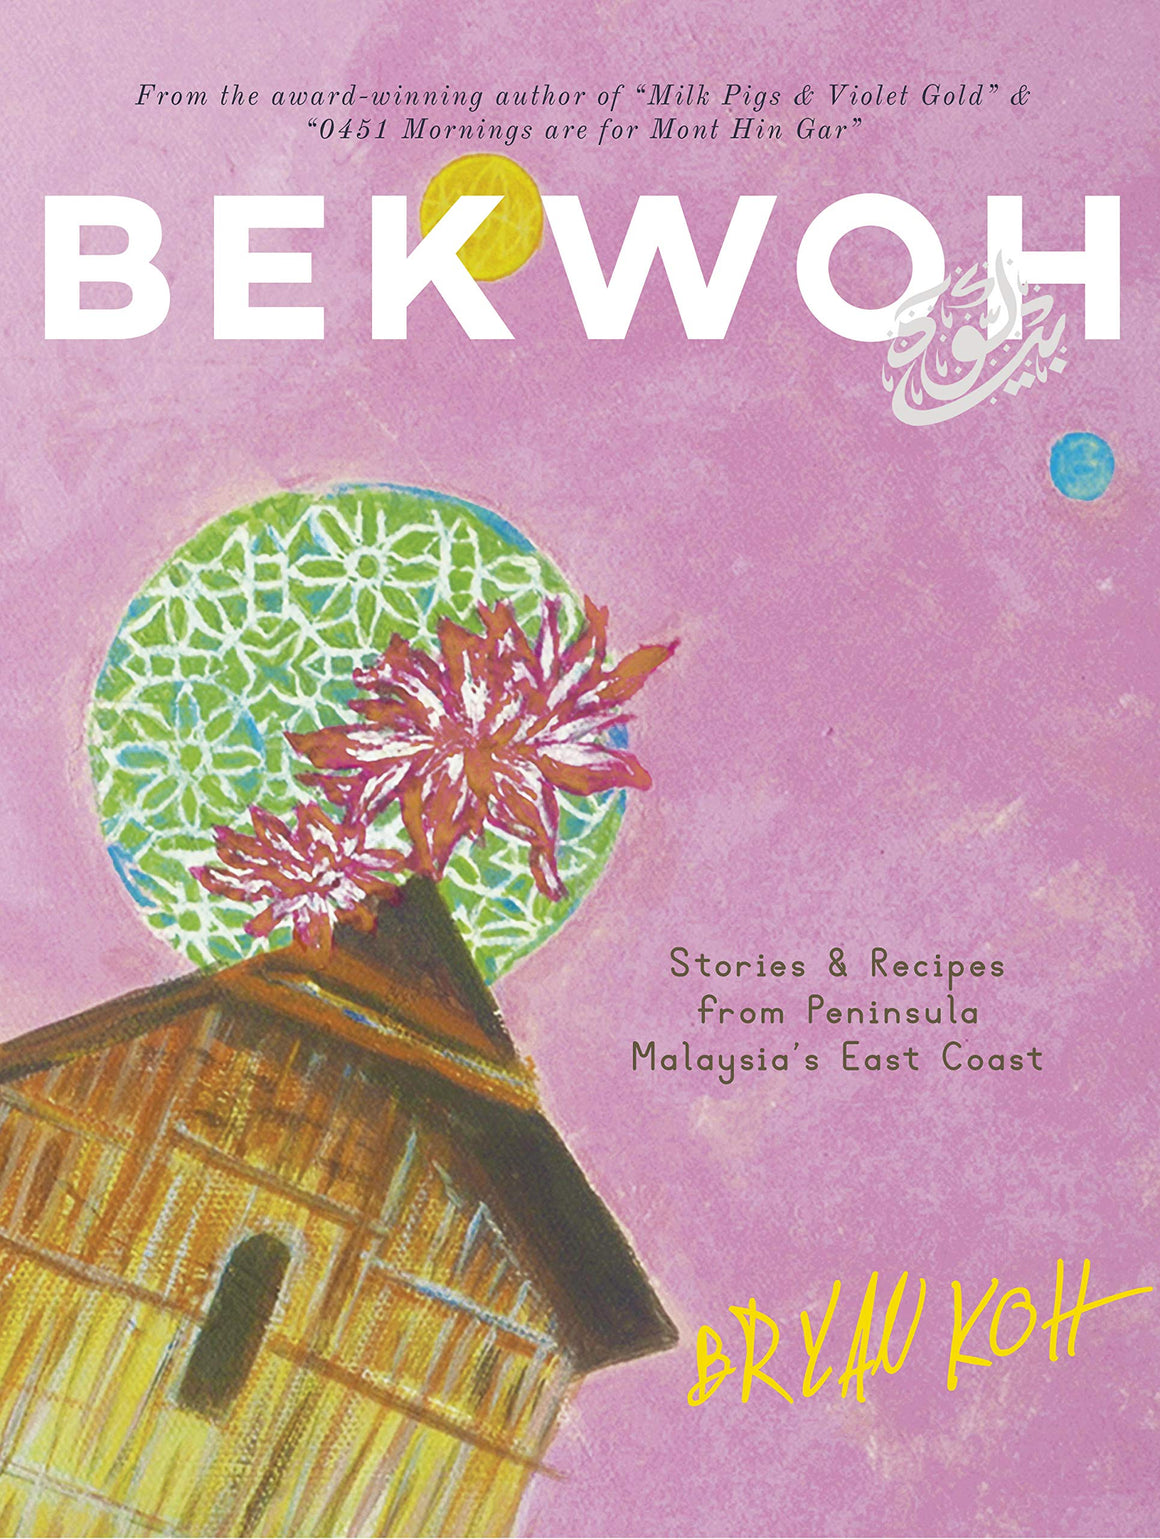 (Malaysian) Bryan Koh. Bekwoh: Stories & Recipes from Peninsula Malaysia's East Coast